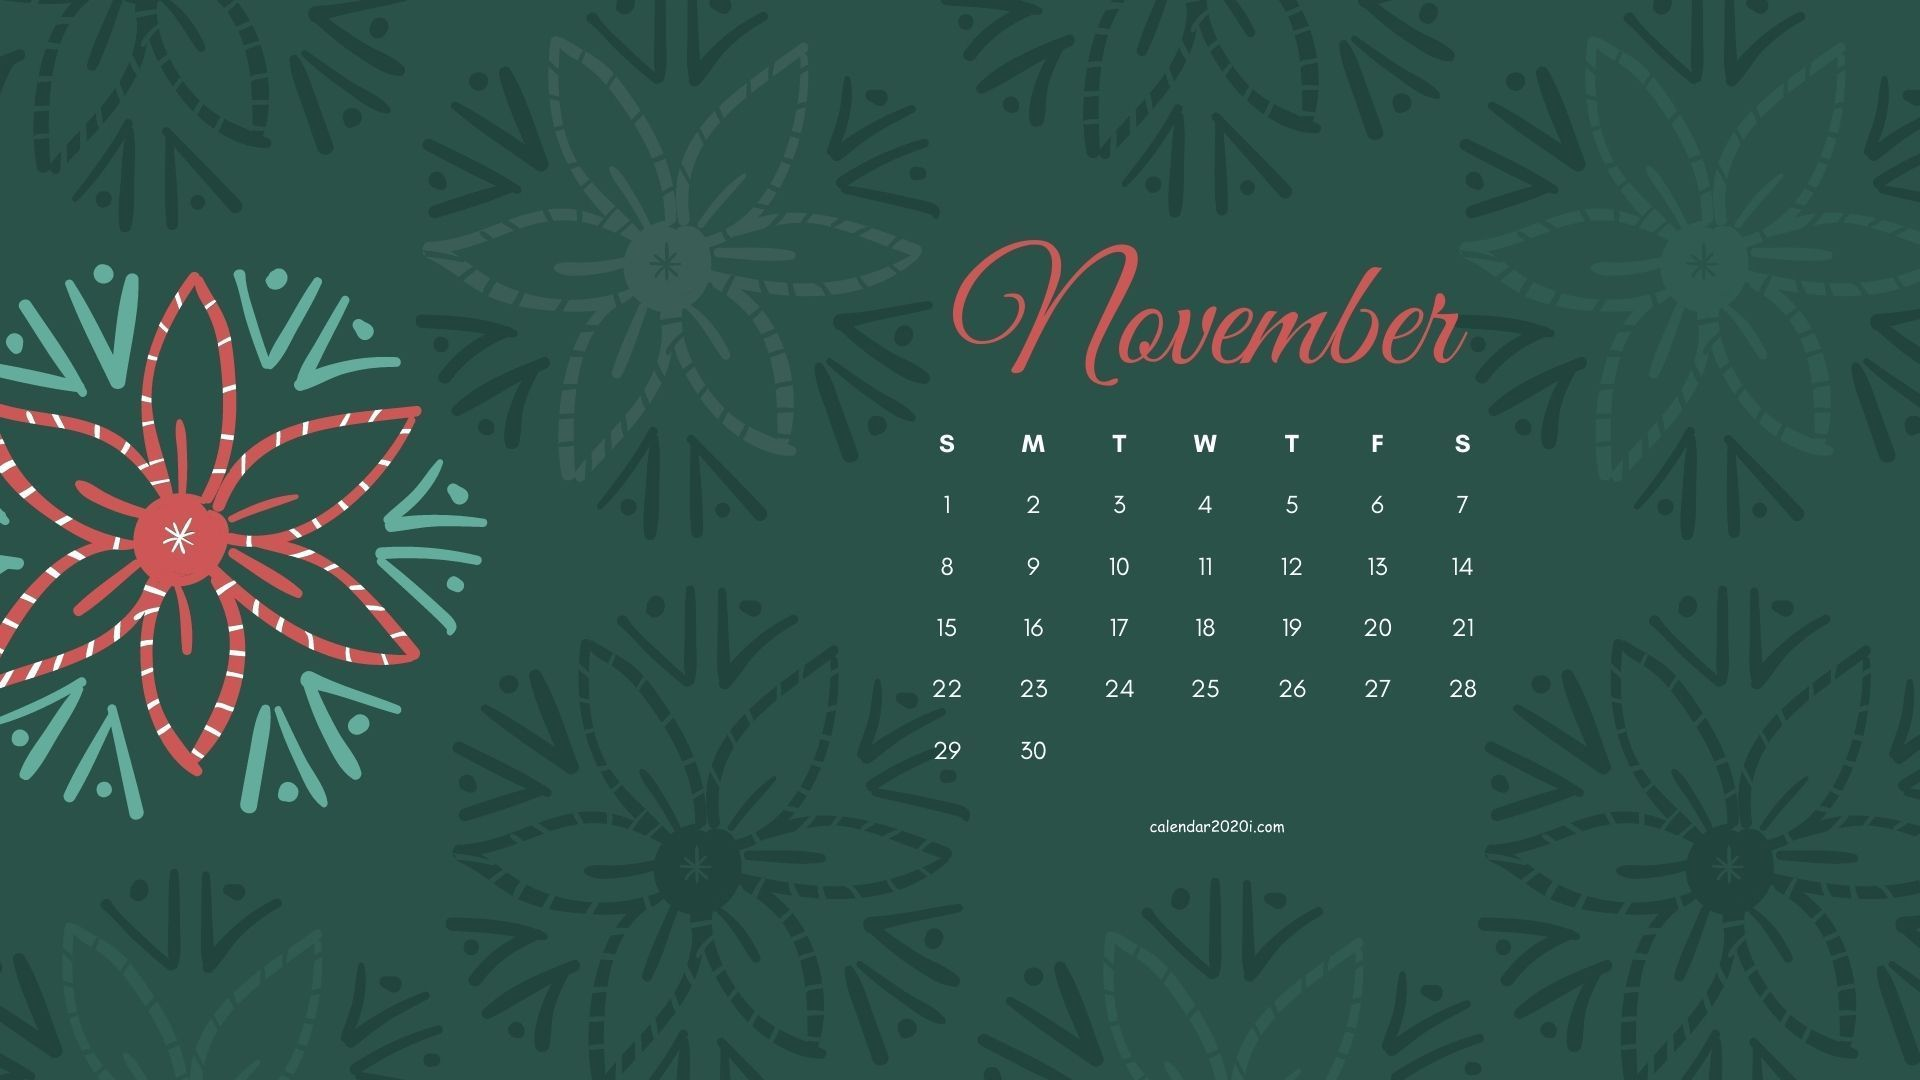 November 2020 Calendar HD Wallpapers Free Download